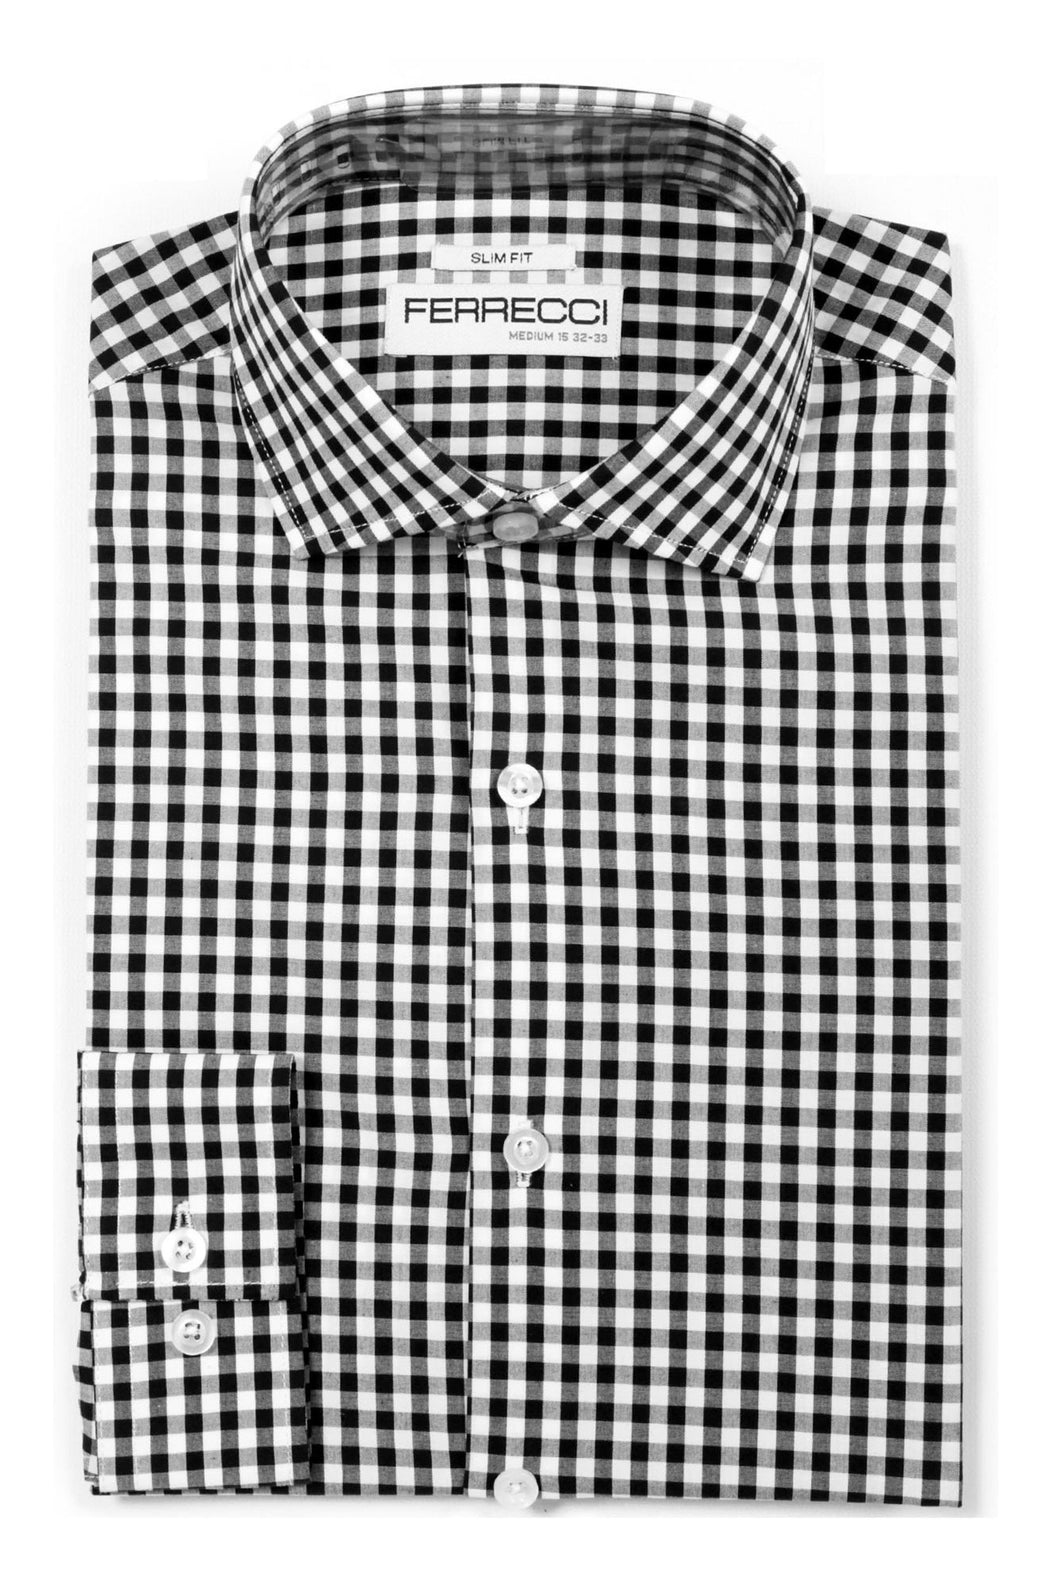 Ferrecci Black Gingham Check Slim Fit Dress Shirt